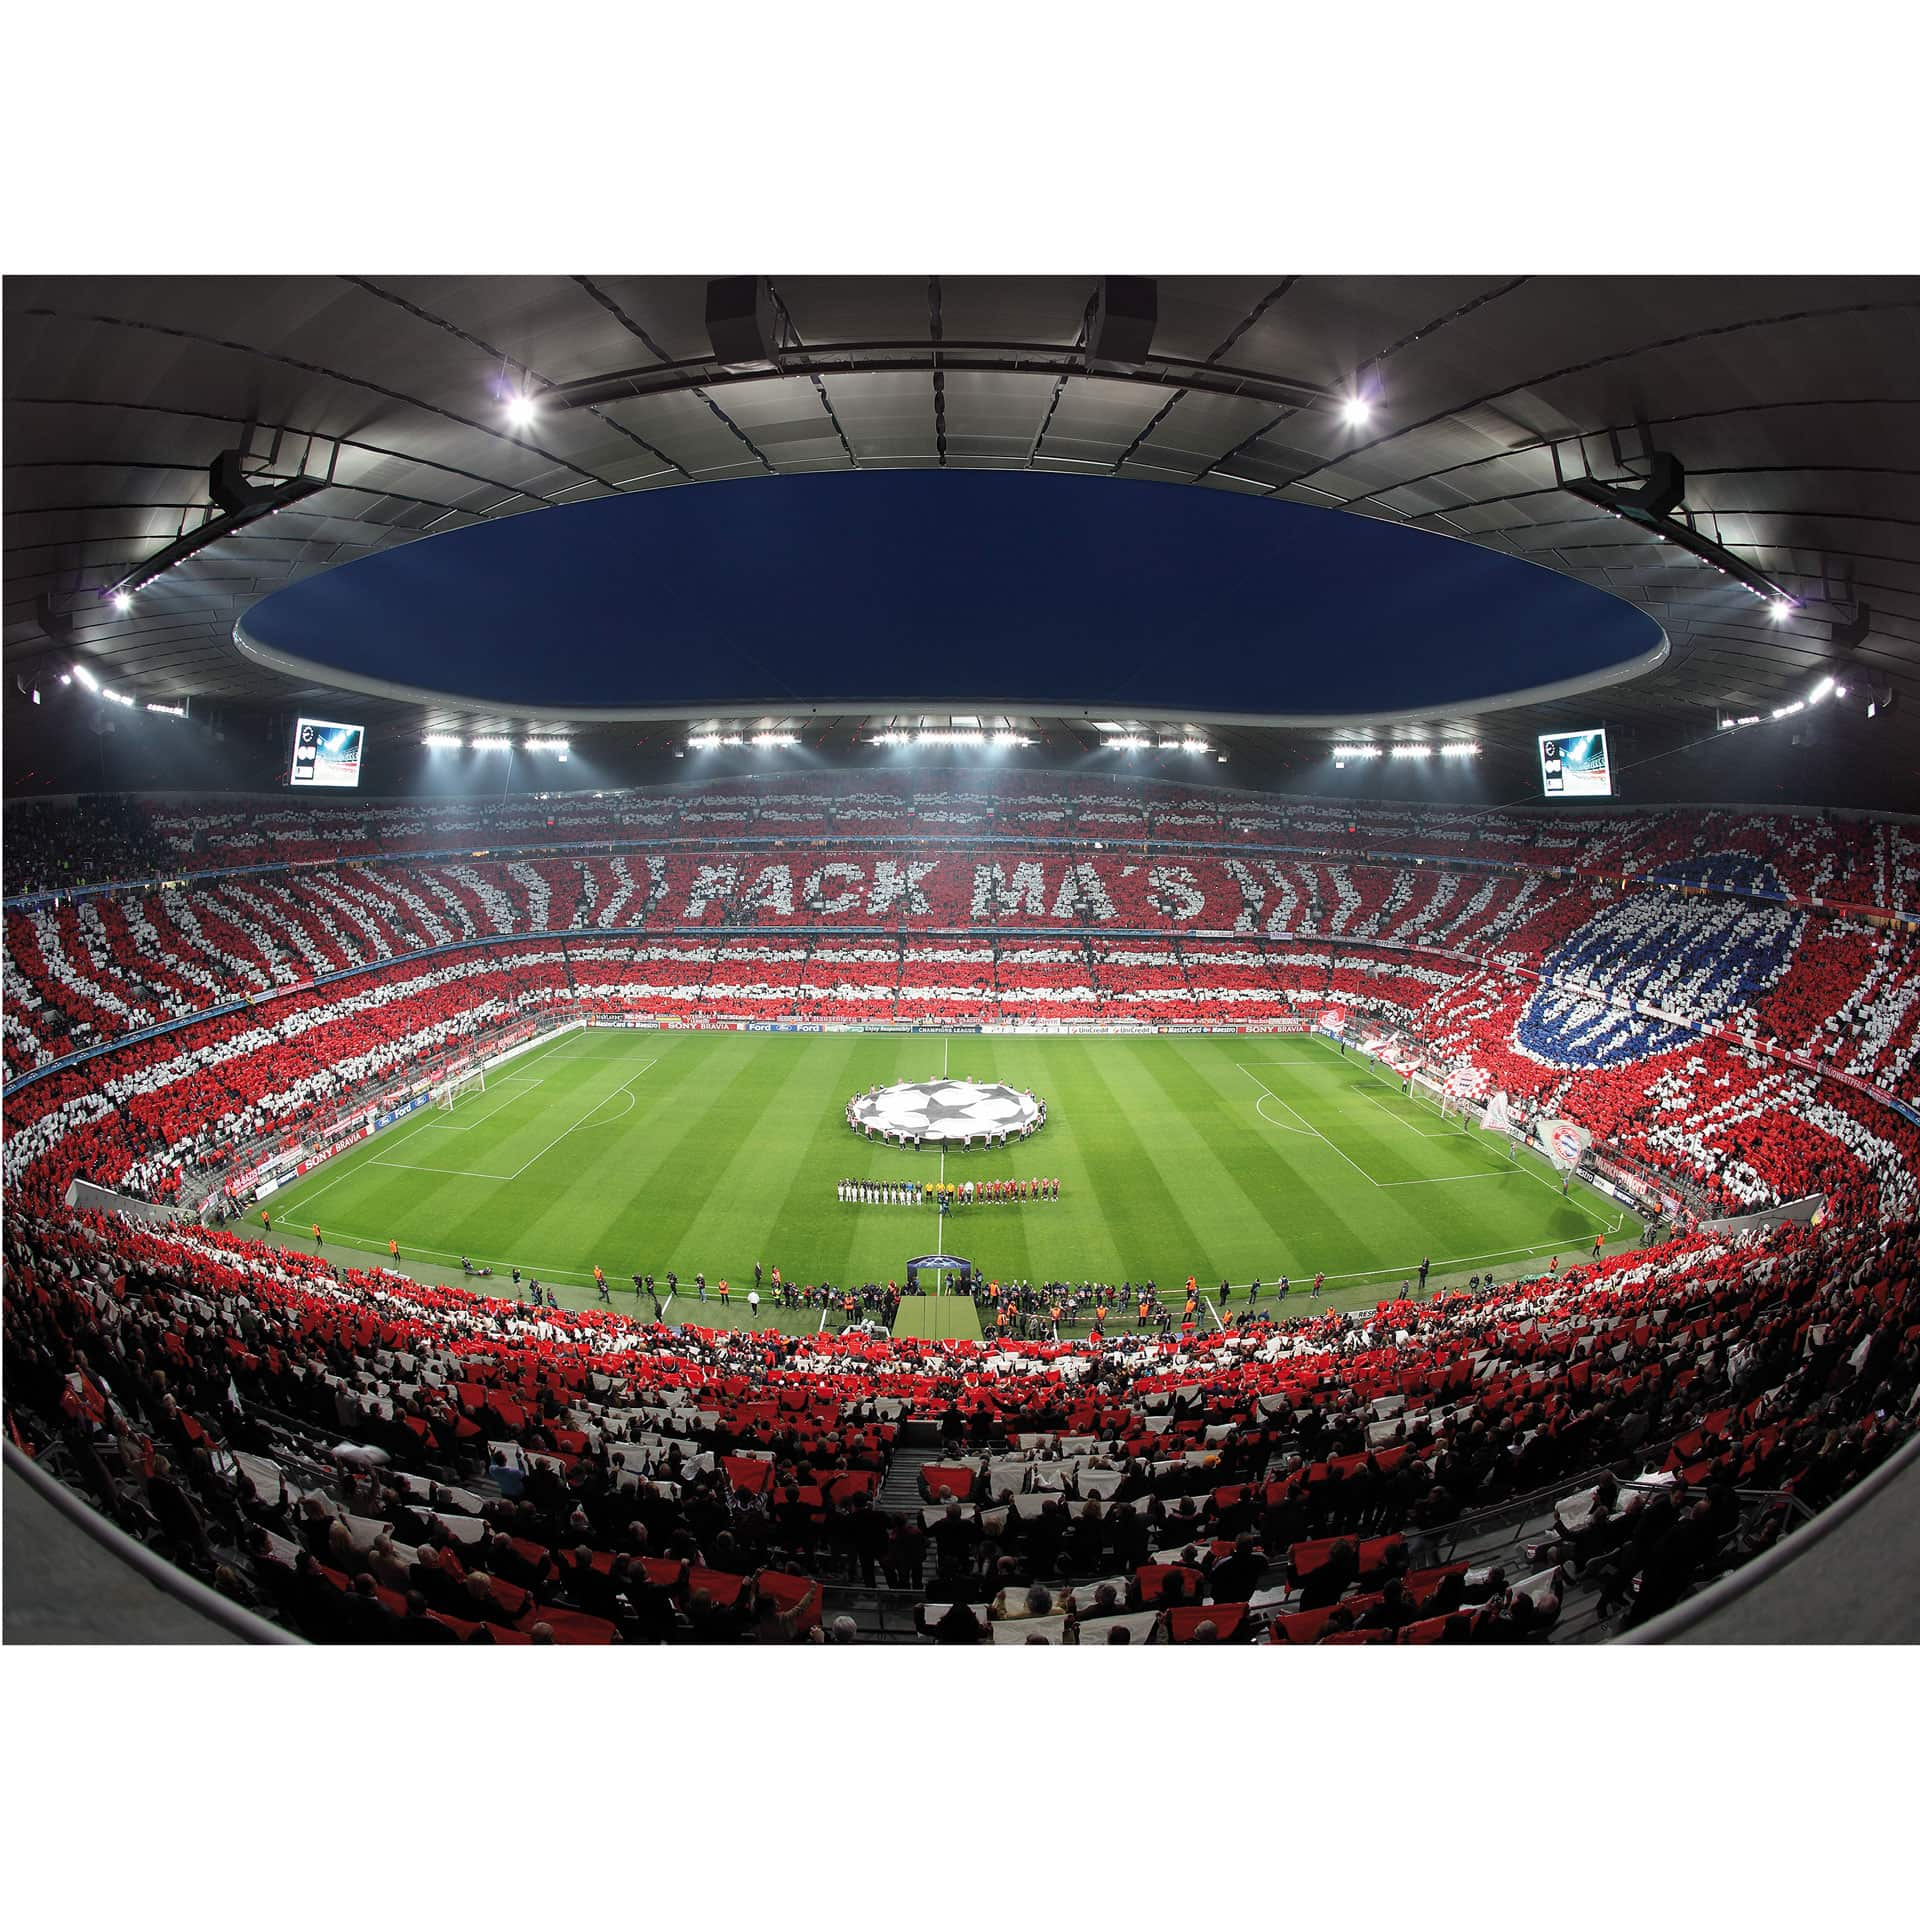 bayern munich soccer stadium photo wall. Black Bedroom Furniture Sets. Home Design Ideas